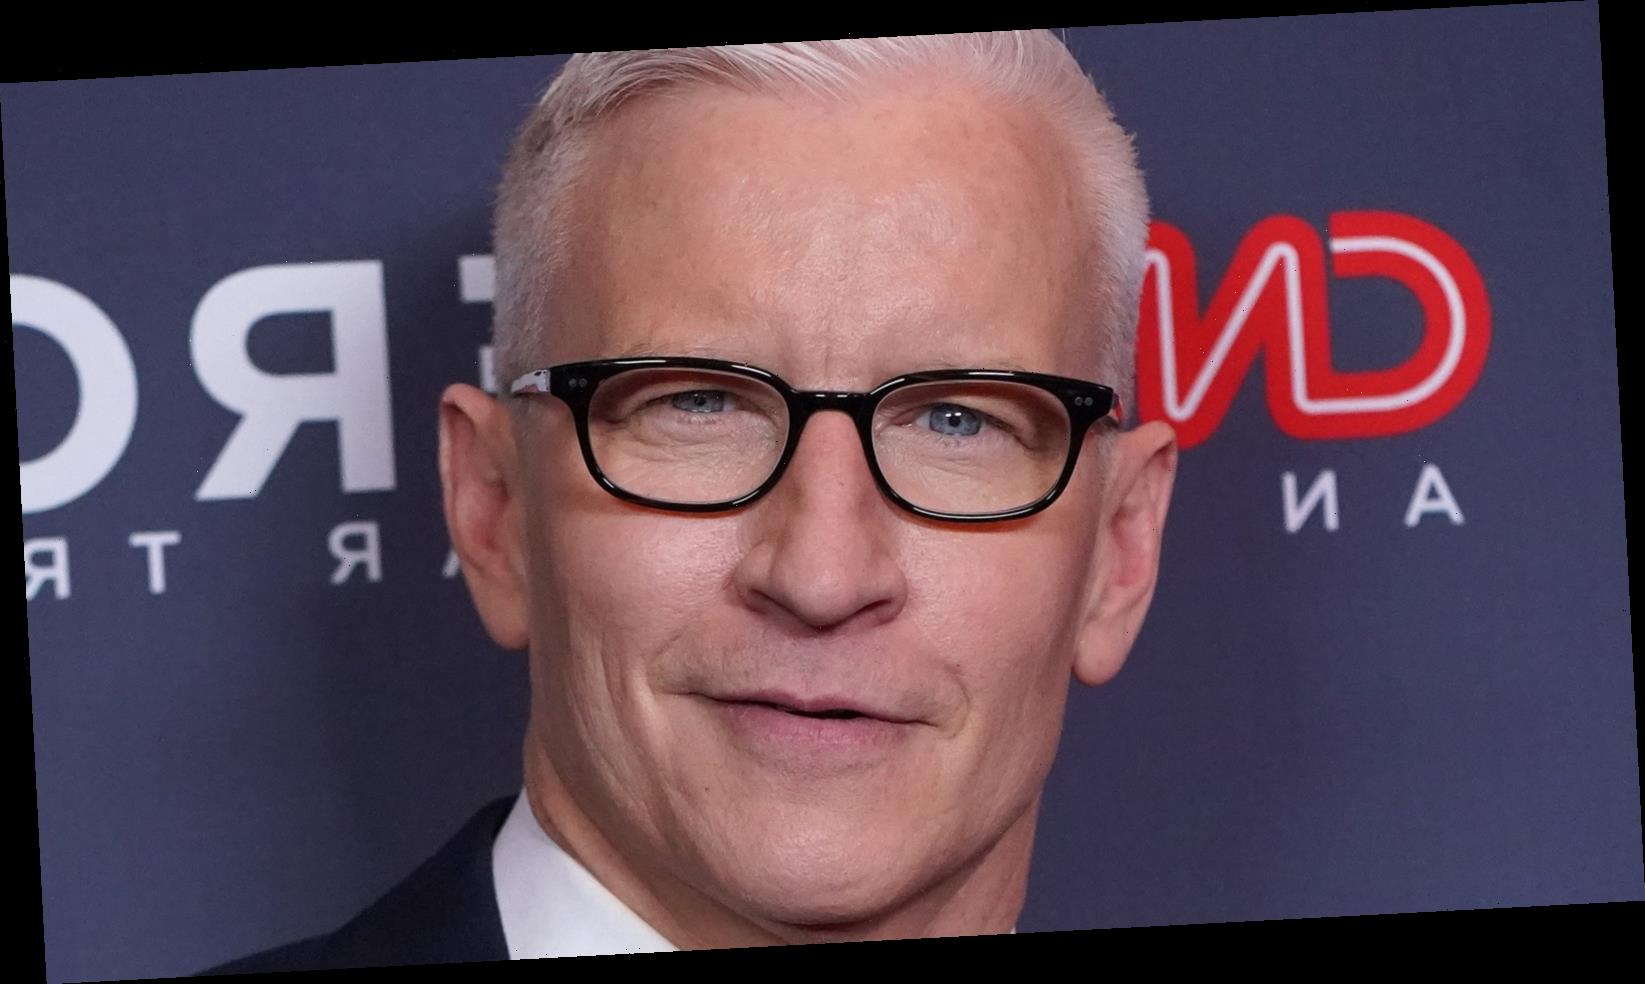 The Real Reason Anderson Cooper Is Living With His Ex